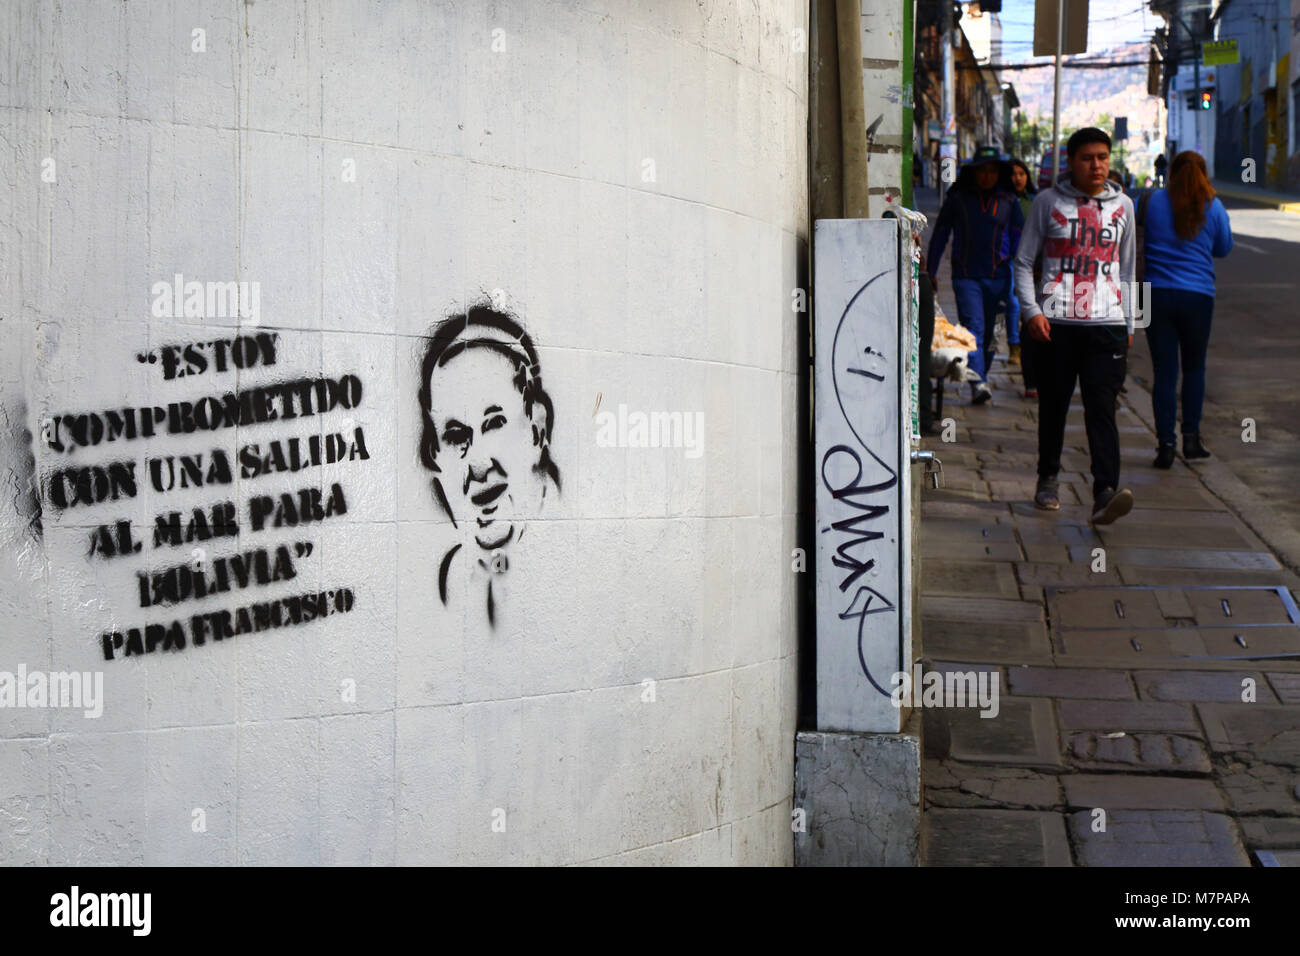 Graffiti with supposed quotation by Pope Francis supporting Bolivia's demand against Chile for sovereign access - Stock Image